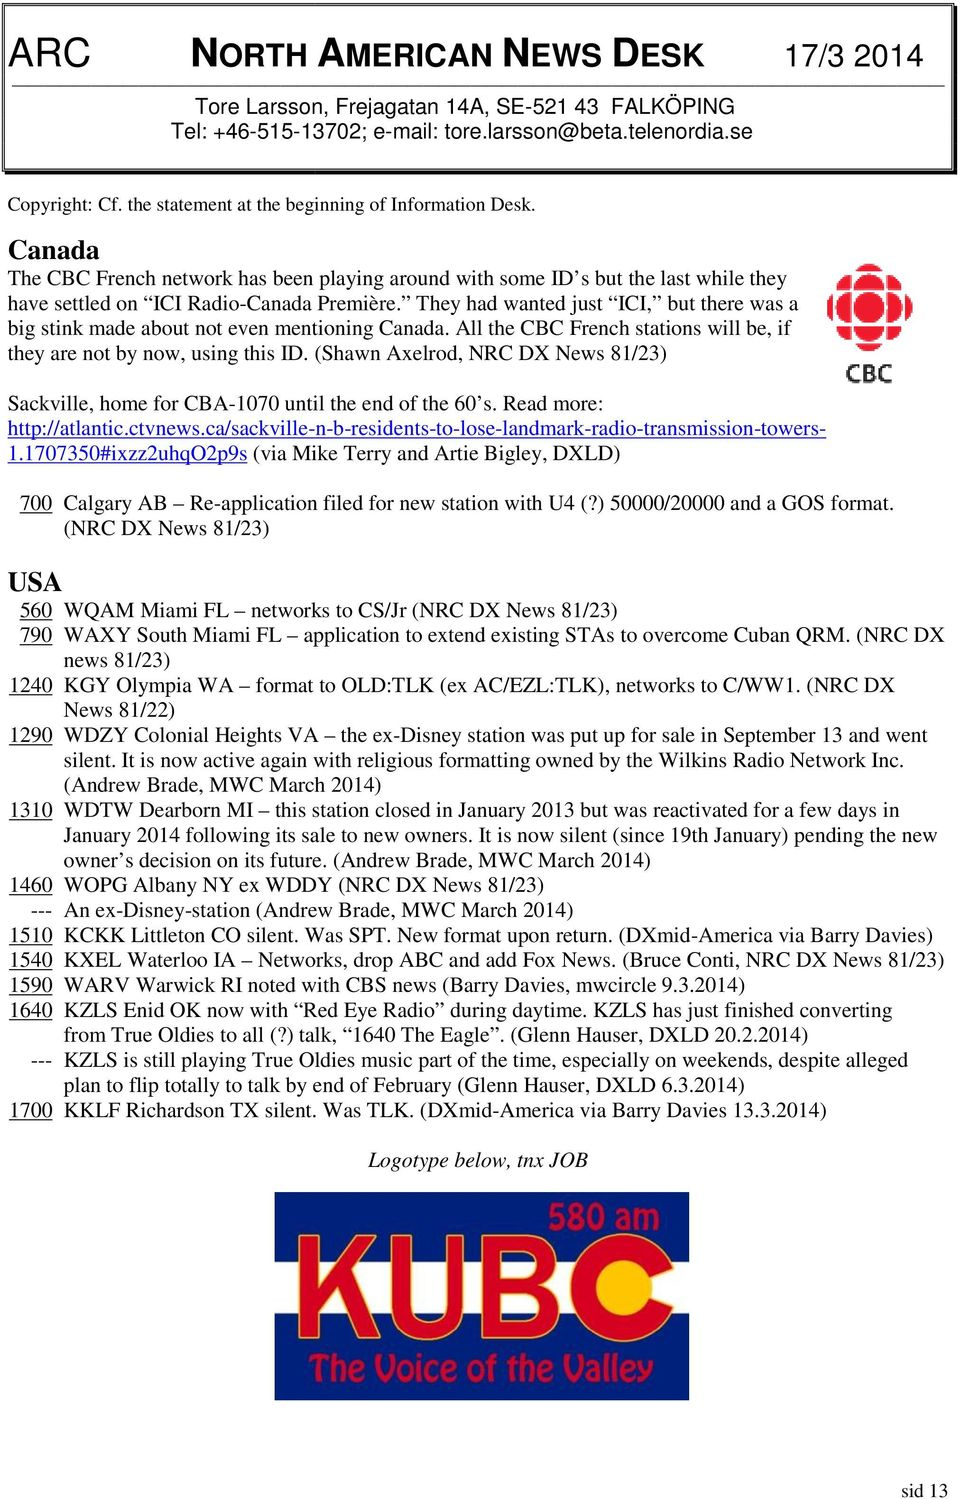 They had wanted just ICI, but there was a big stink made about not even mentioning Canada. All the CBC French stations will be, if they are not by now, using this ID.